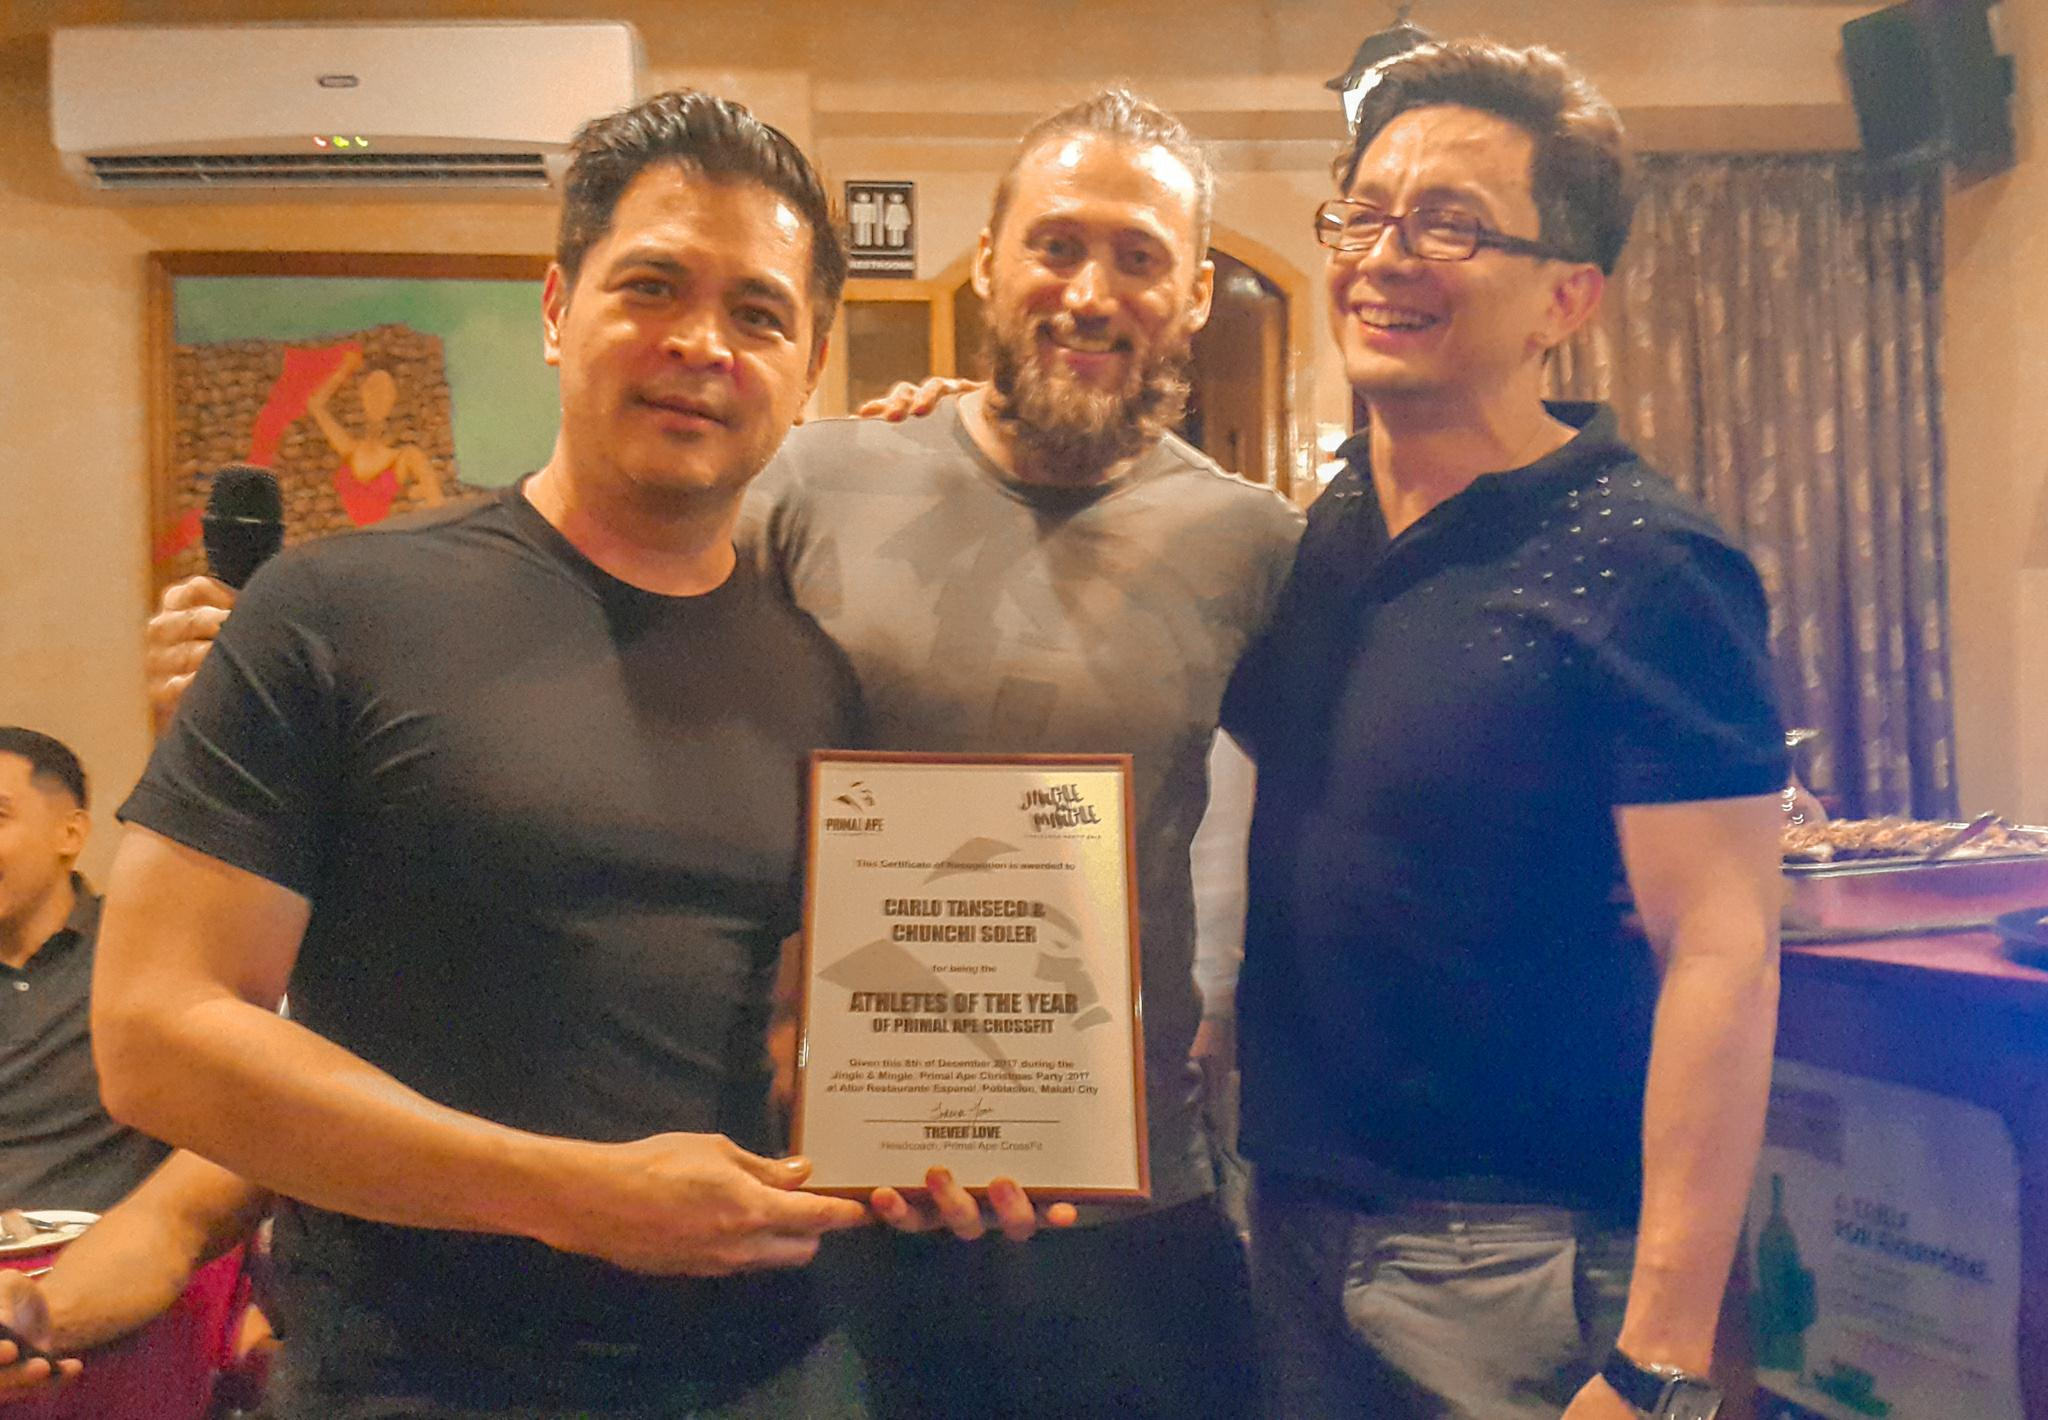 Carlo and Chunchi receives the Certificate of Recognition as Primal Ape's Athlete of the Year